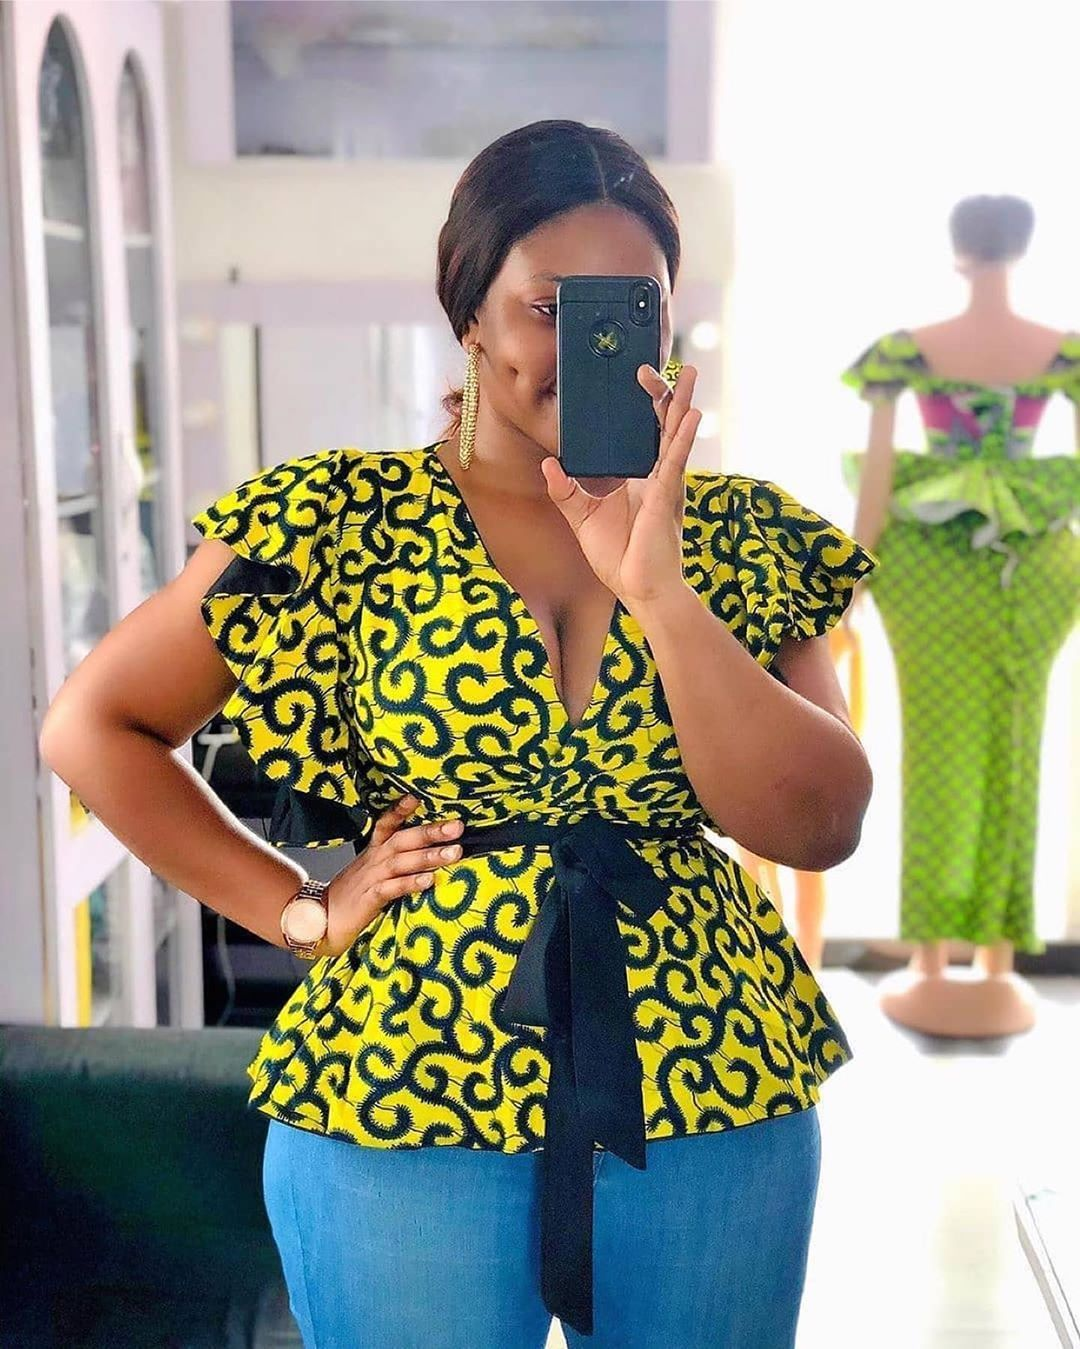 30 latest Ankara styles - Ankara blouse styles for classy ladies | African  print tops, African print fashion dresses, African fashion skirts